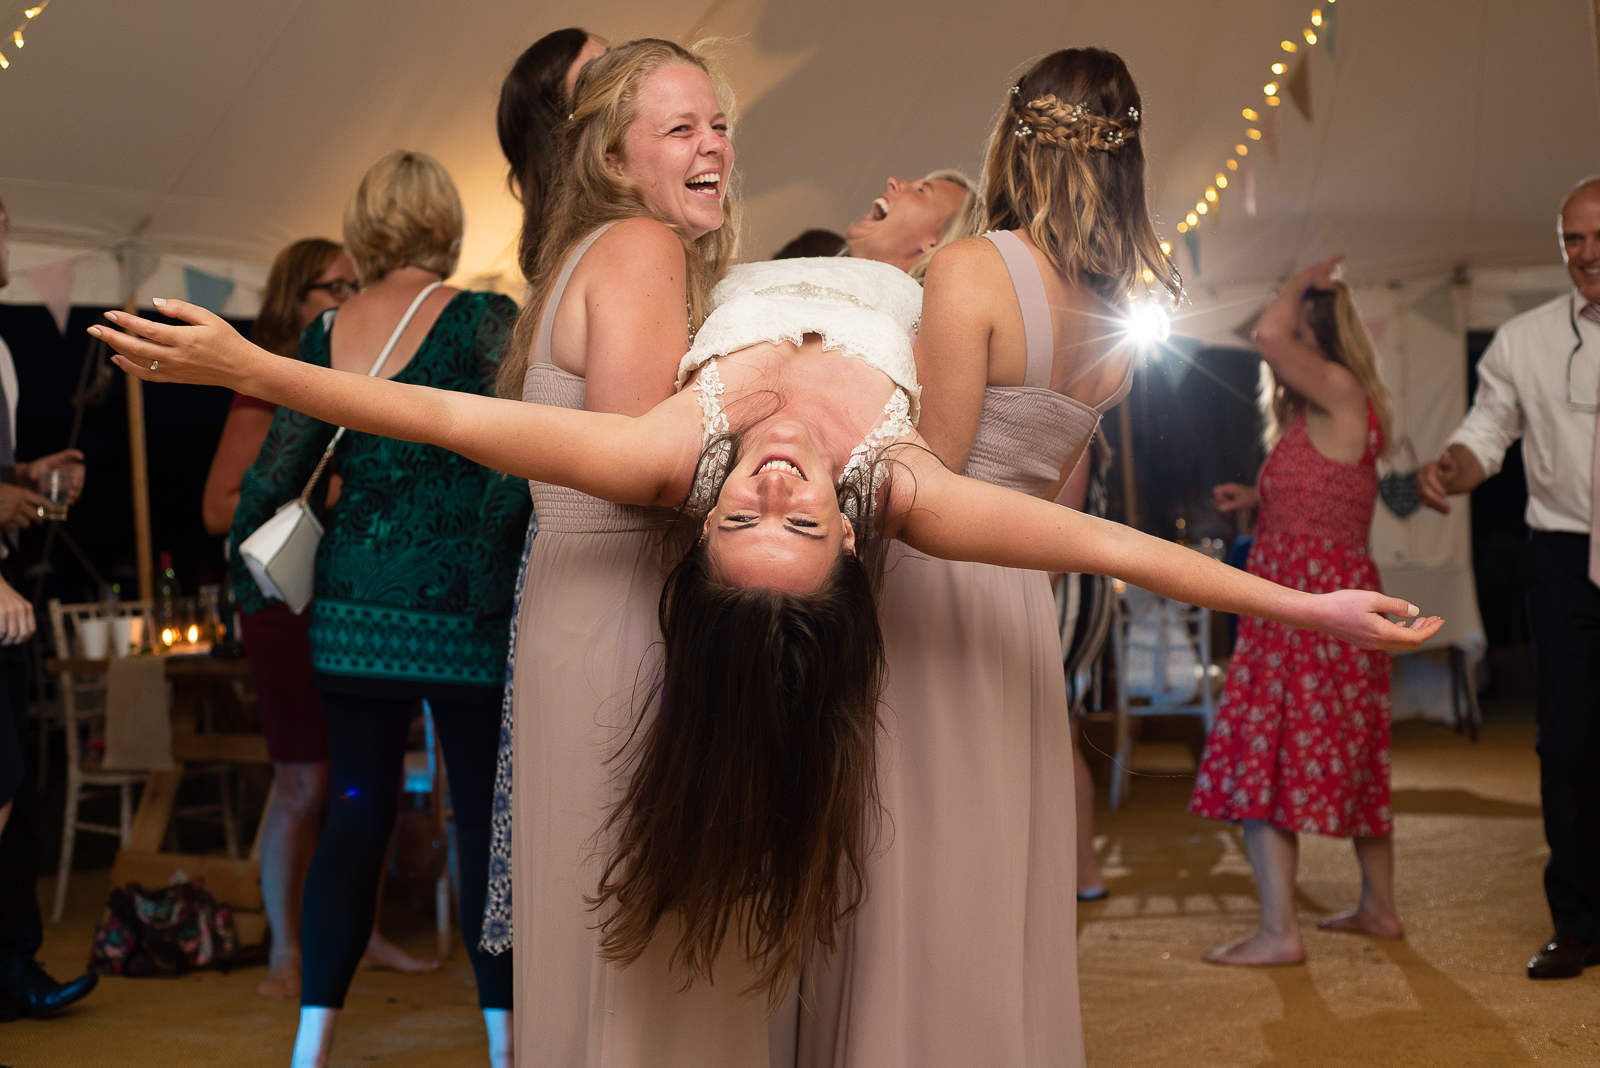 Bride being carried by friends on the dancefloor at festival style wedding in cornwall